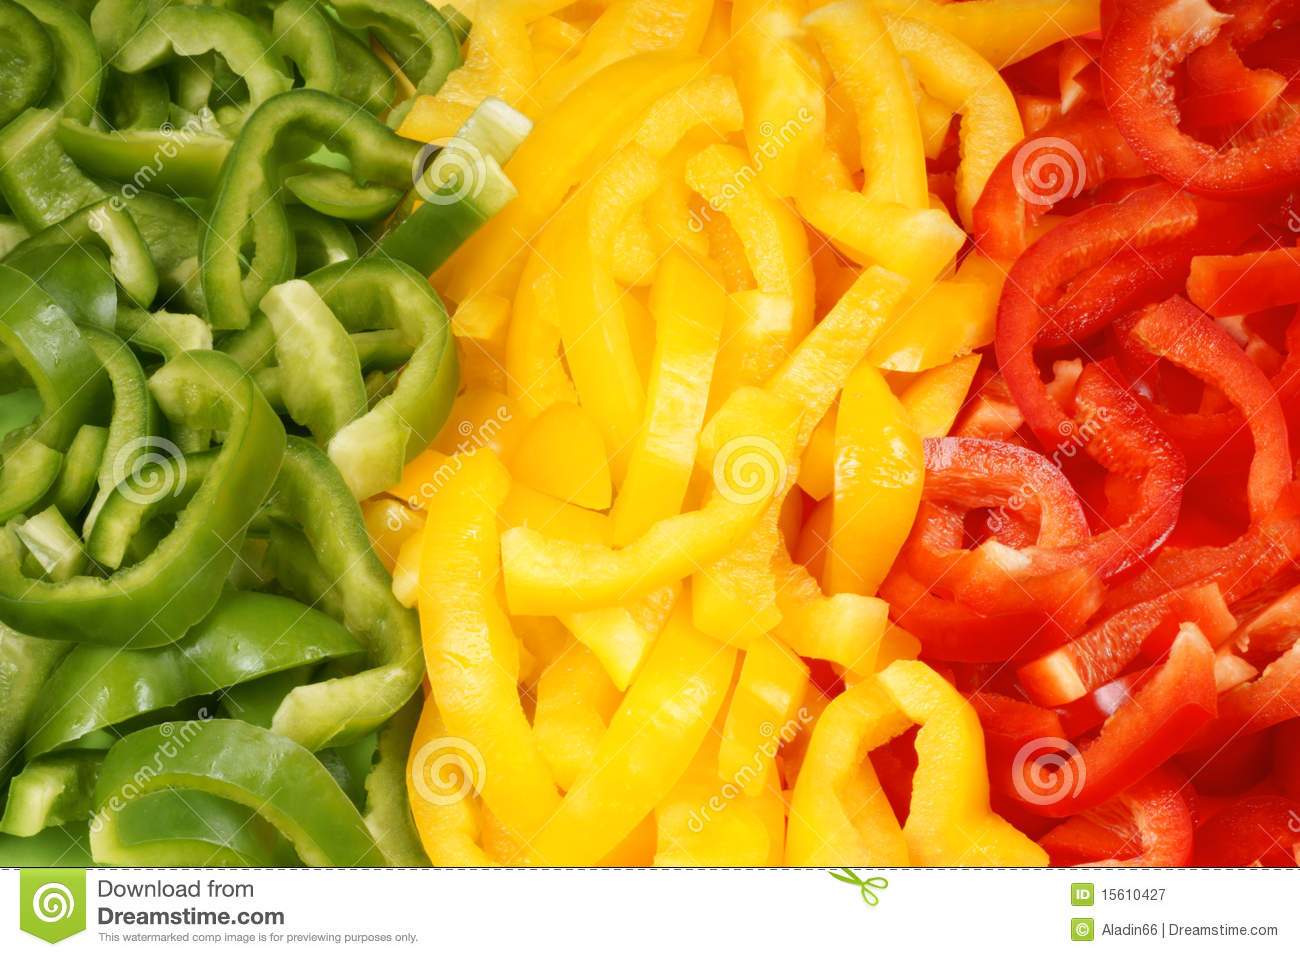 Slices of green, yellow and red bell pepper